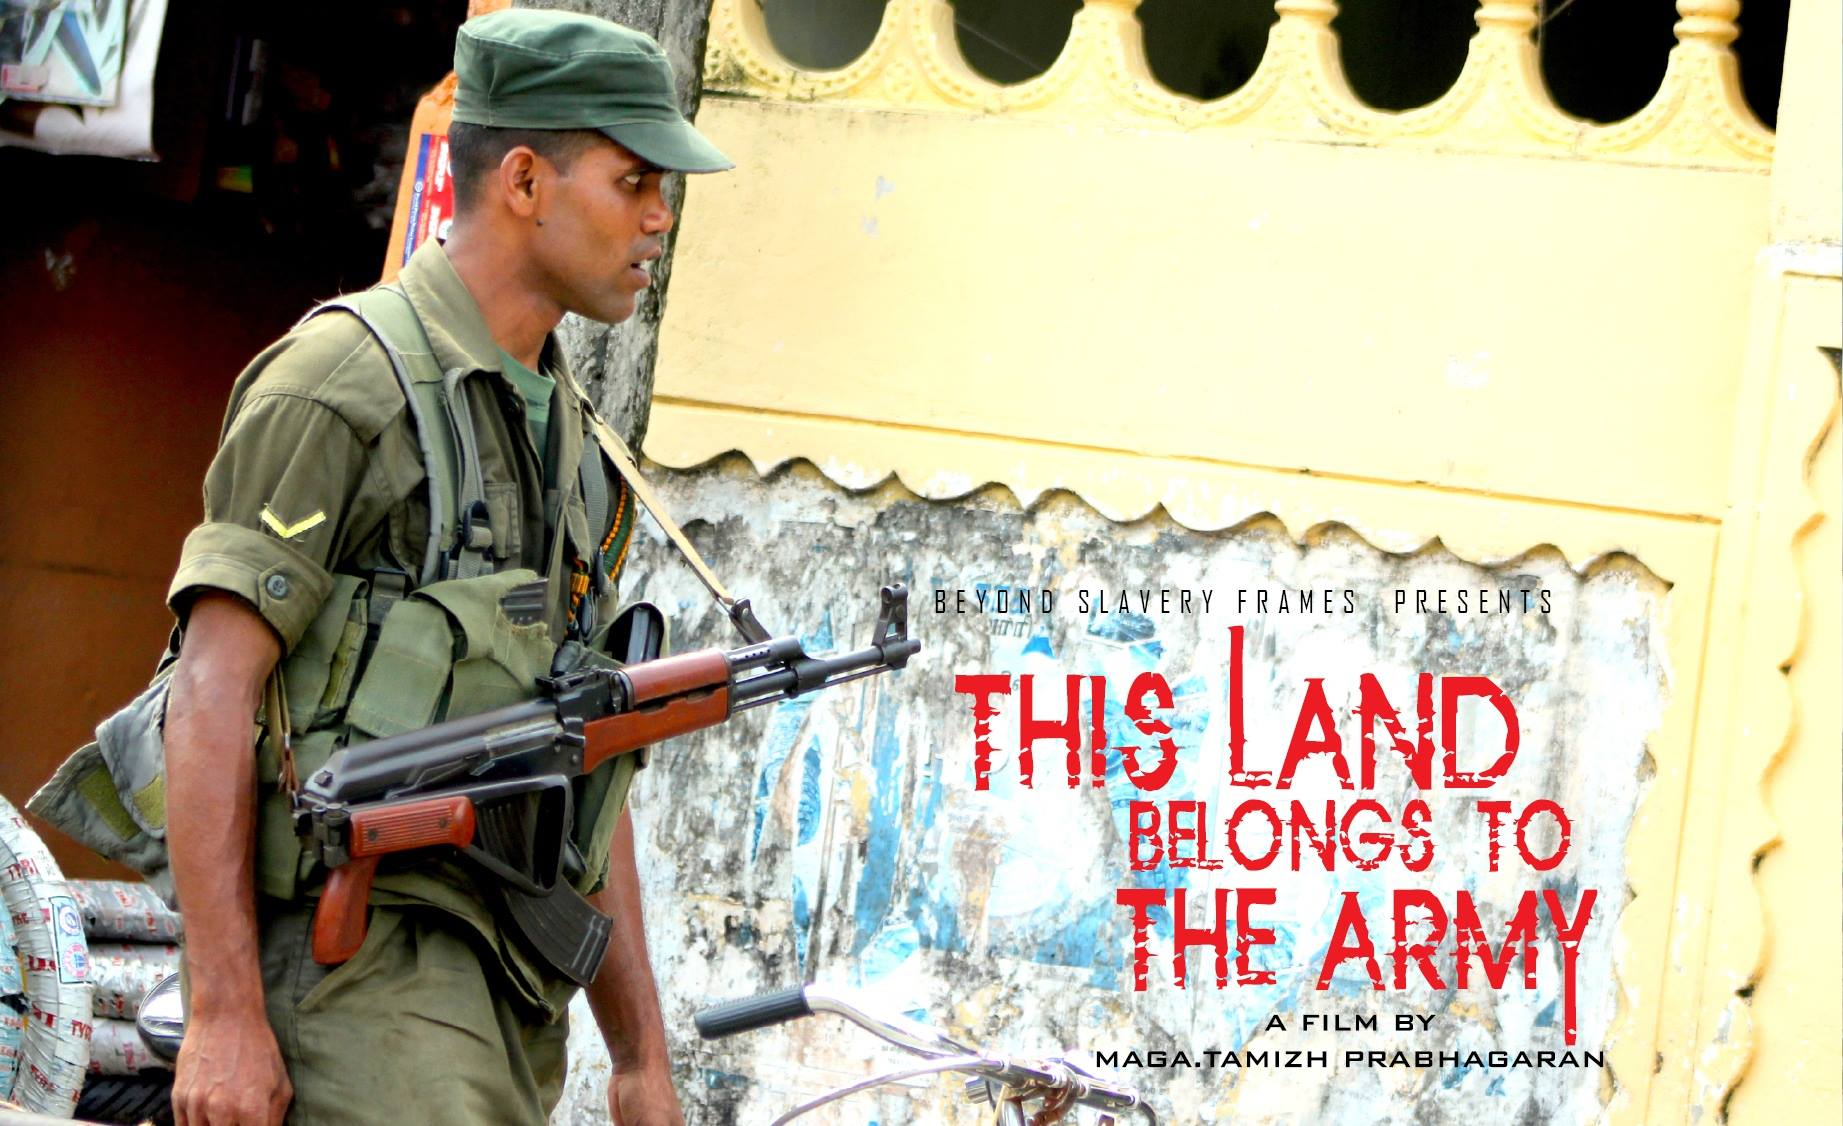 This Land Belongs to the Army